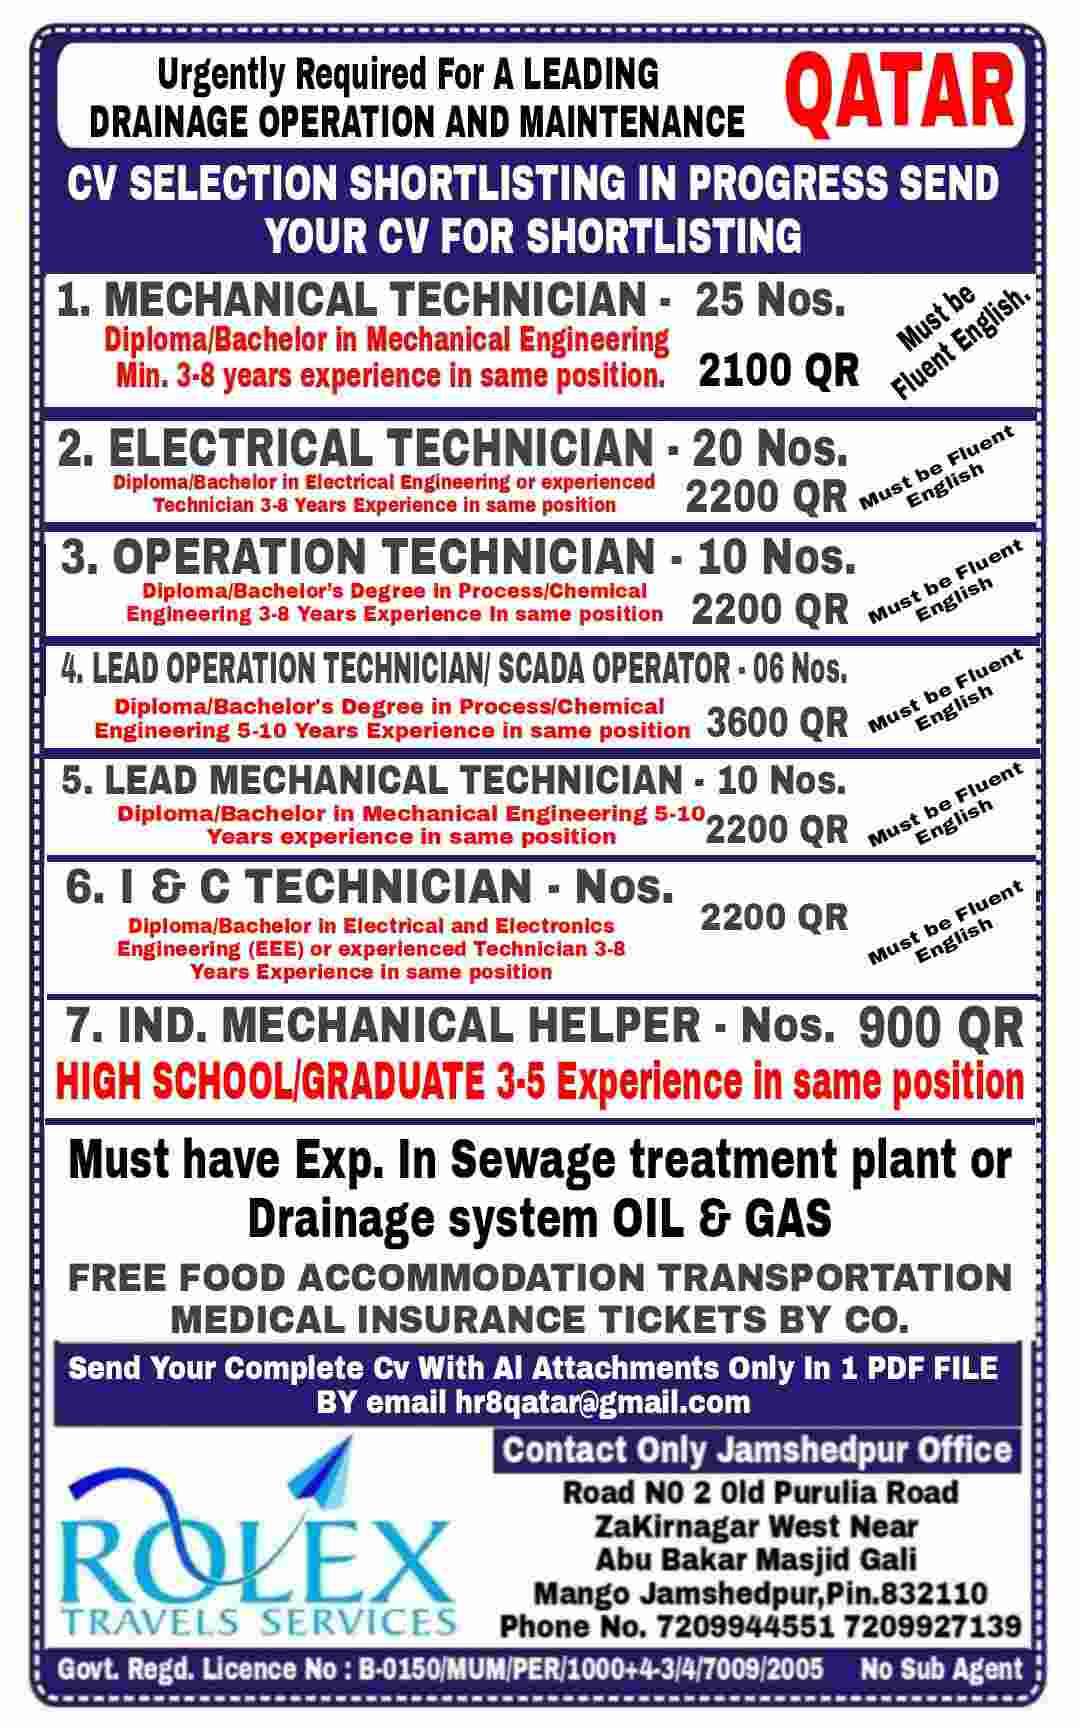 Gulf jobs | Urgently required for Qatar – Cv selection is in progress